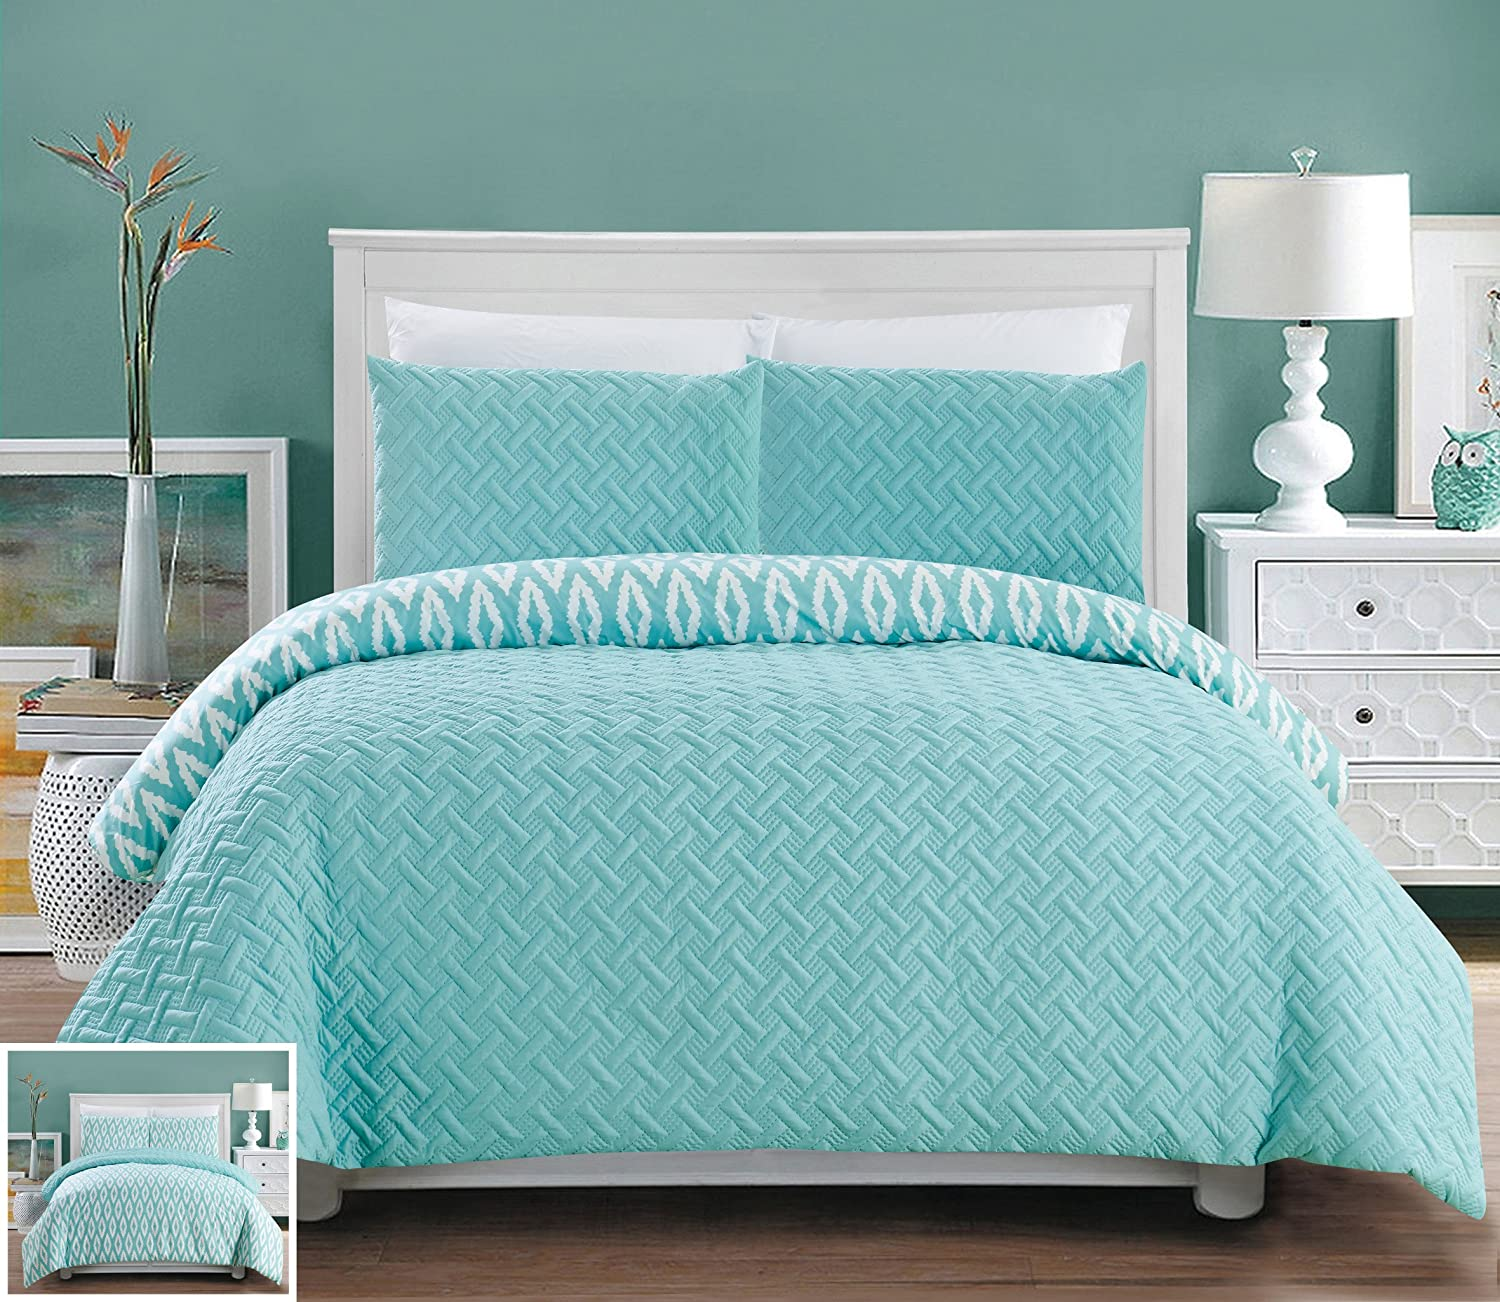 Chic Home 2 Piece Ora Heavy Embossed and Embroidered Quilted Geometrical Pattern Reversible Printed Twin Comforter Set Aqua